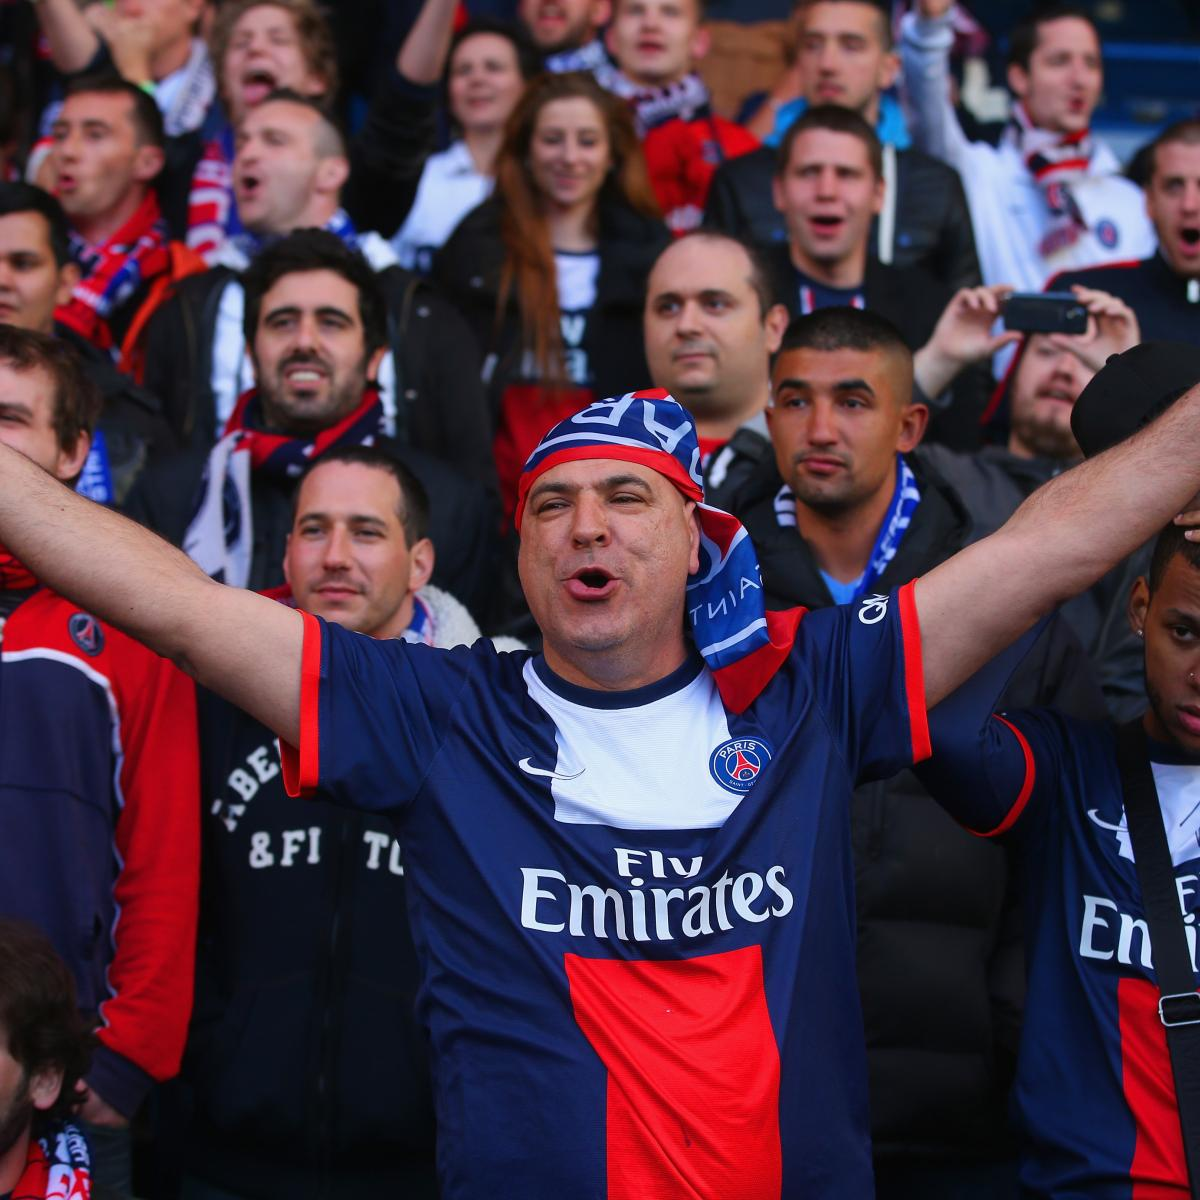 Psg Vs Chelsea Live Score Highlights From Champions: UEFA Open Disciplinary Proceedings For Alleged Racism By